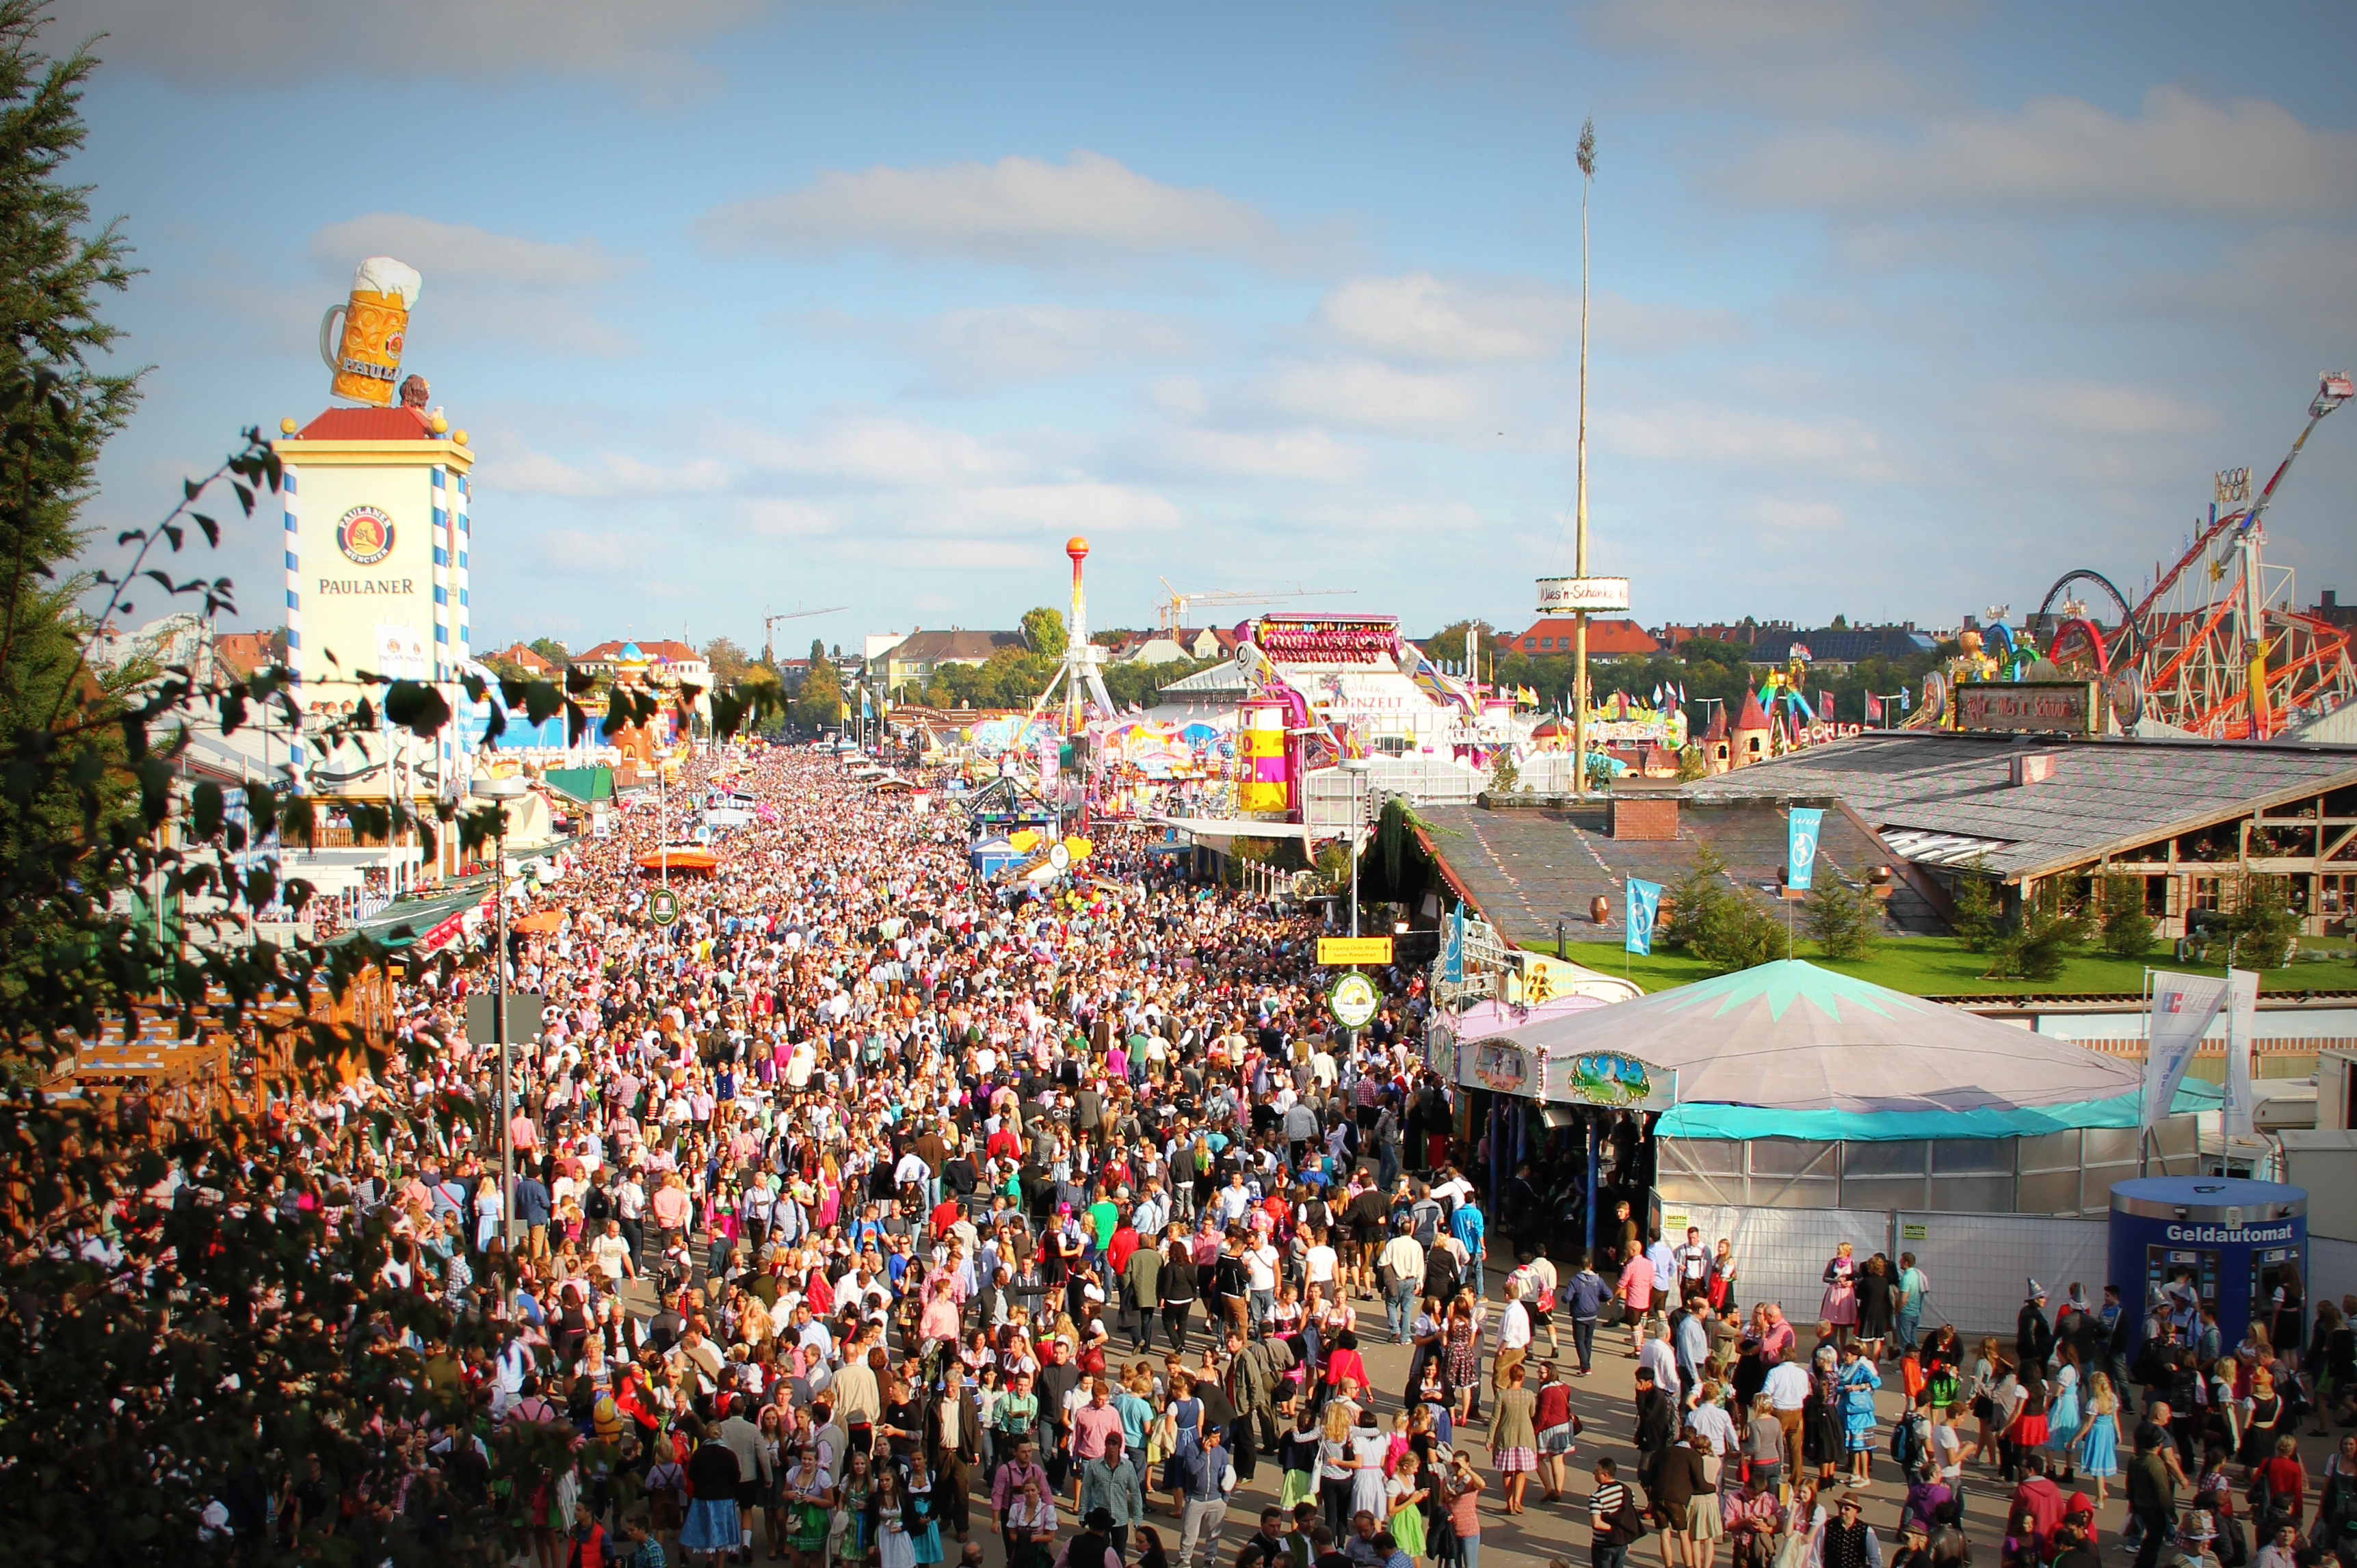 8 Reasons you'll want to go to the world's biggest beer festival